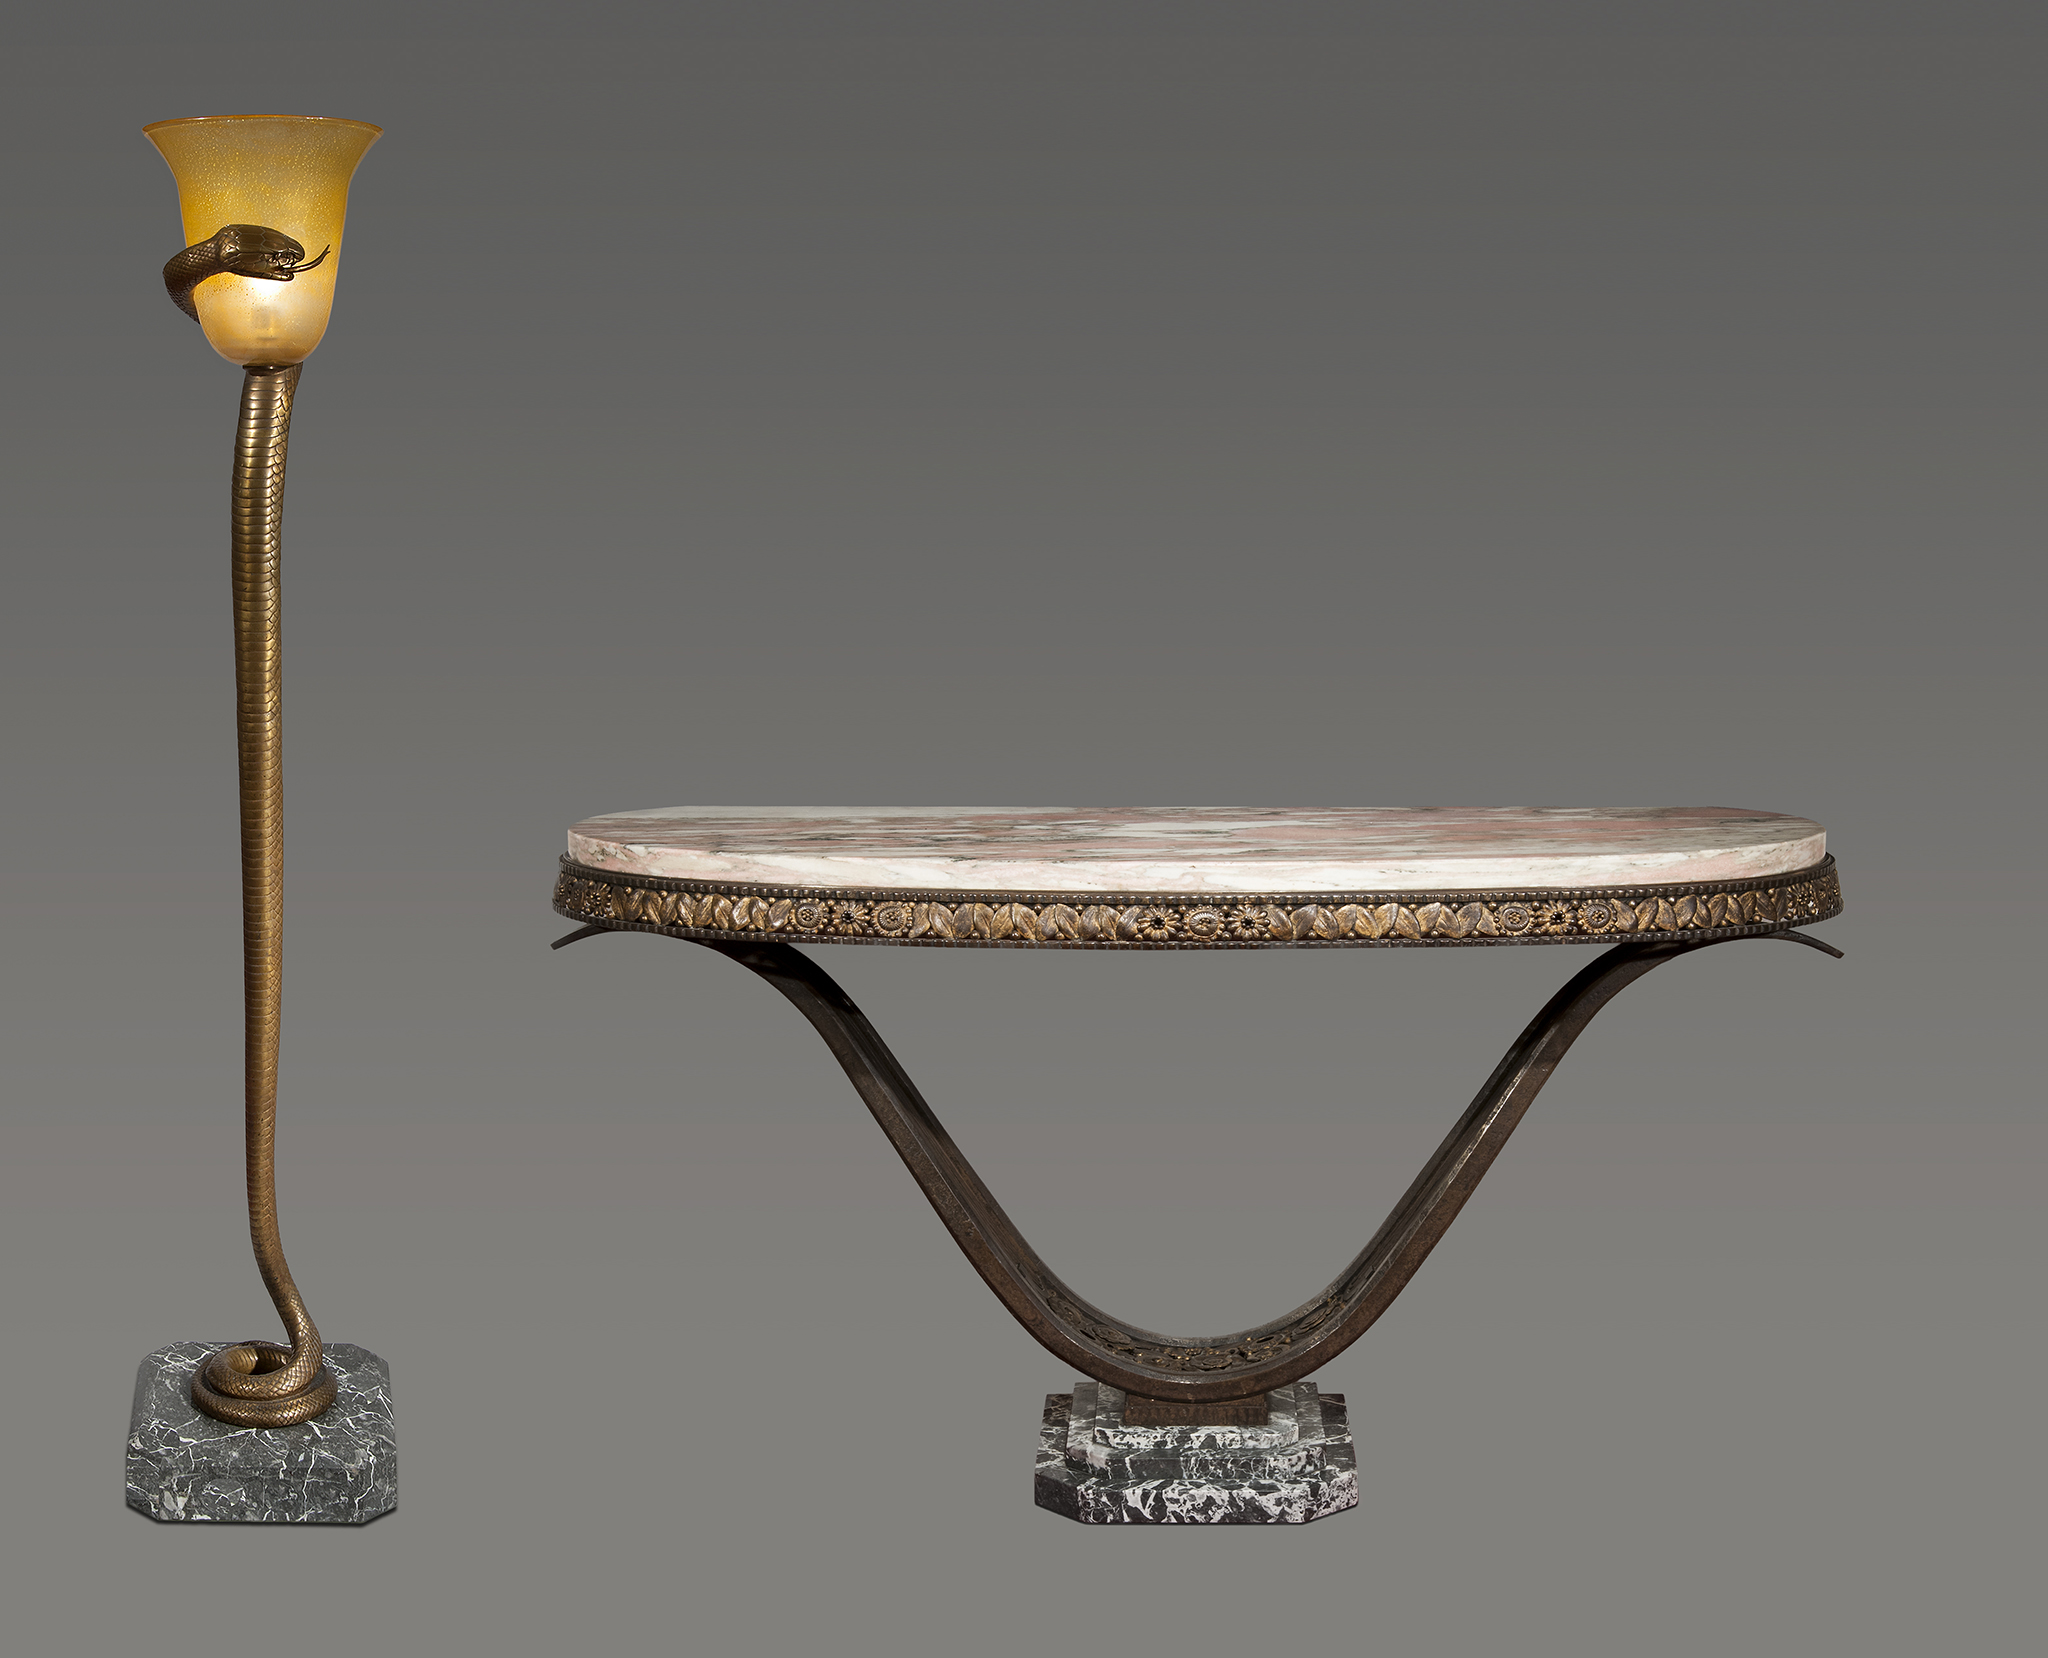 Antique console in patinated wrought iron, steel and marbre and 'La Tentation' bronze and glass floor lamp by Edgar Brandt 1925 Courtesy of Robert Zehil Gallery